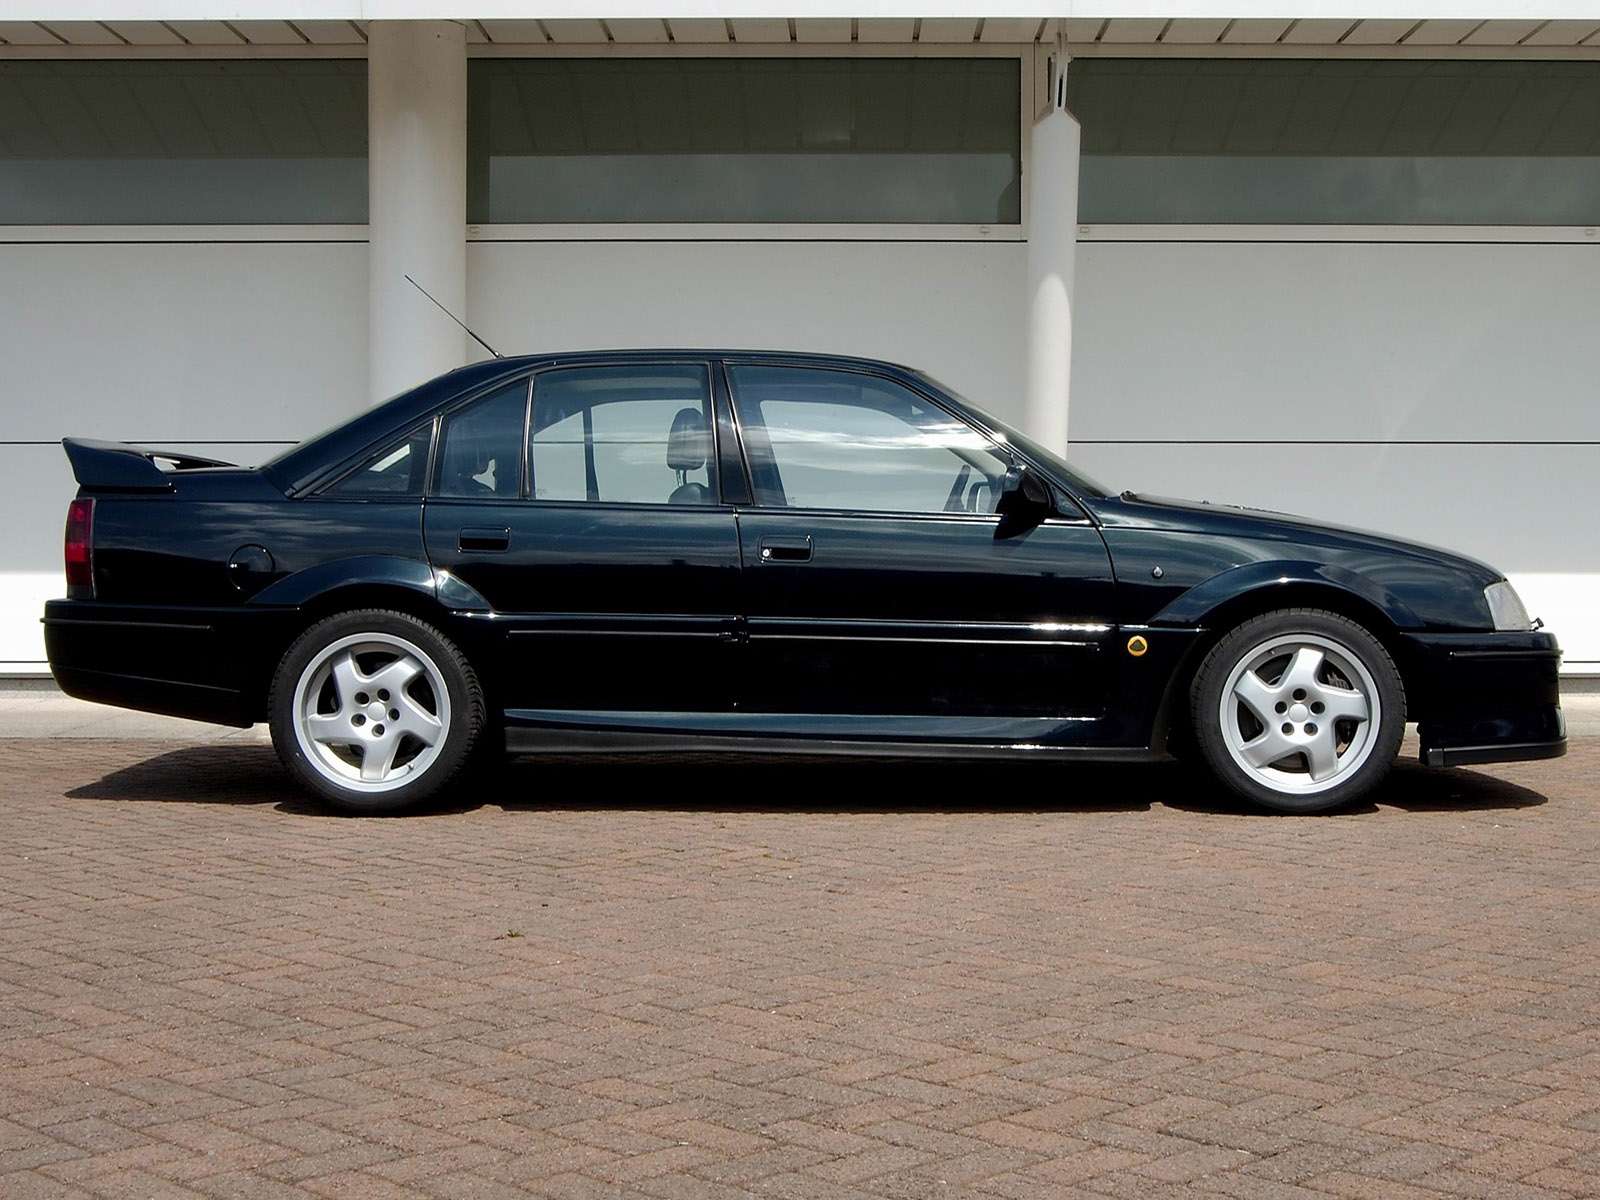 vauxhall lotus carlton 1990 1992 vauxhall lotus carlton 1990 1992 photo 15 car in pictures. Black Bedroom Furniture Sets. Home Design Ideas